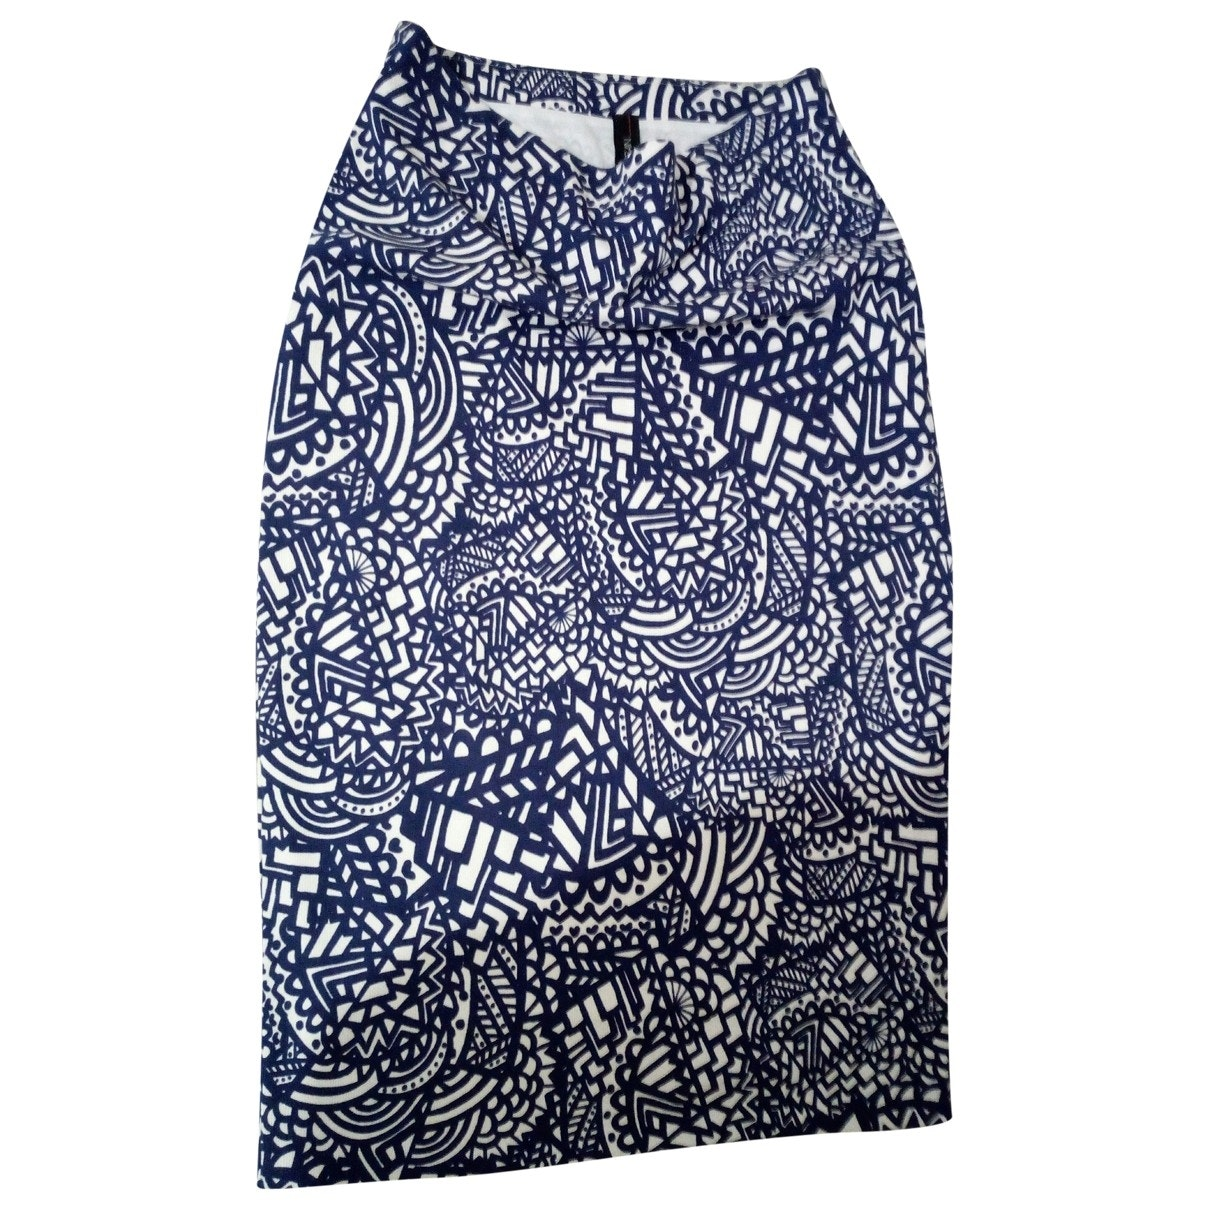 MARC CAIN Women Skirts - Vestiaire Collective